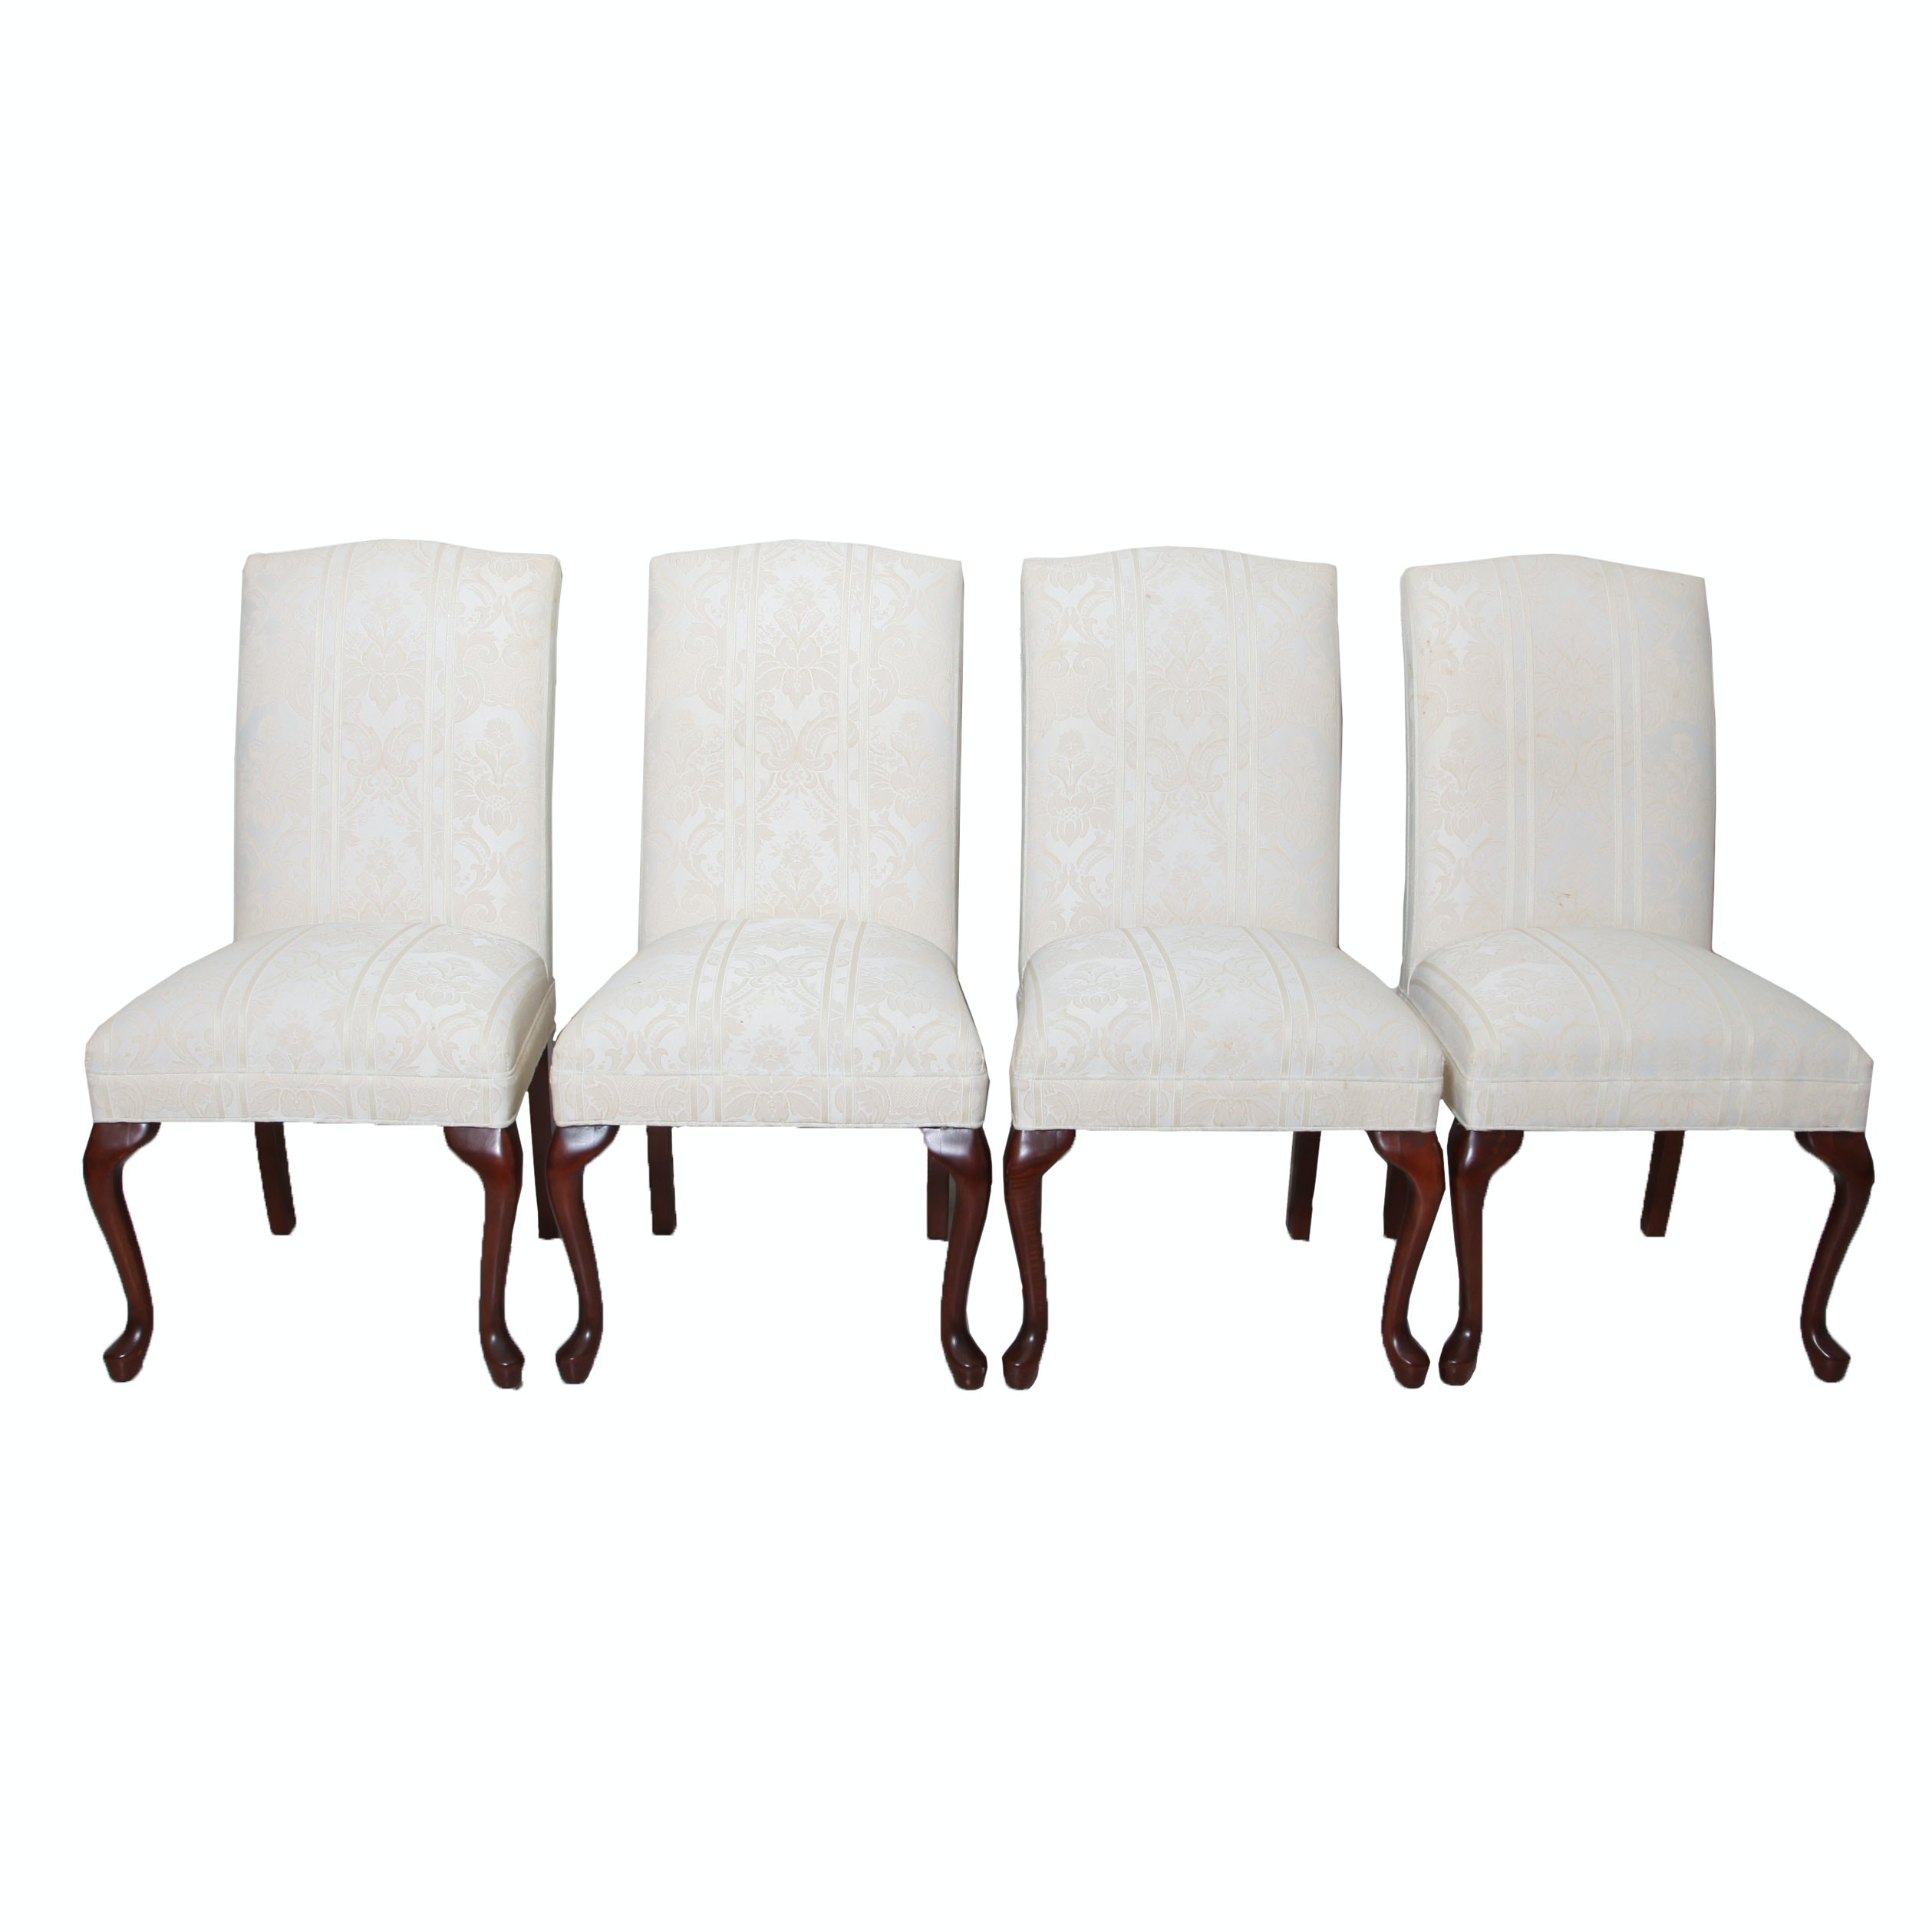 Four Upholstered Side Chairs